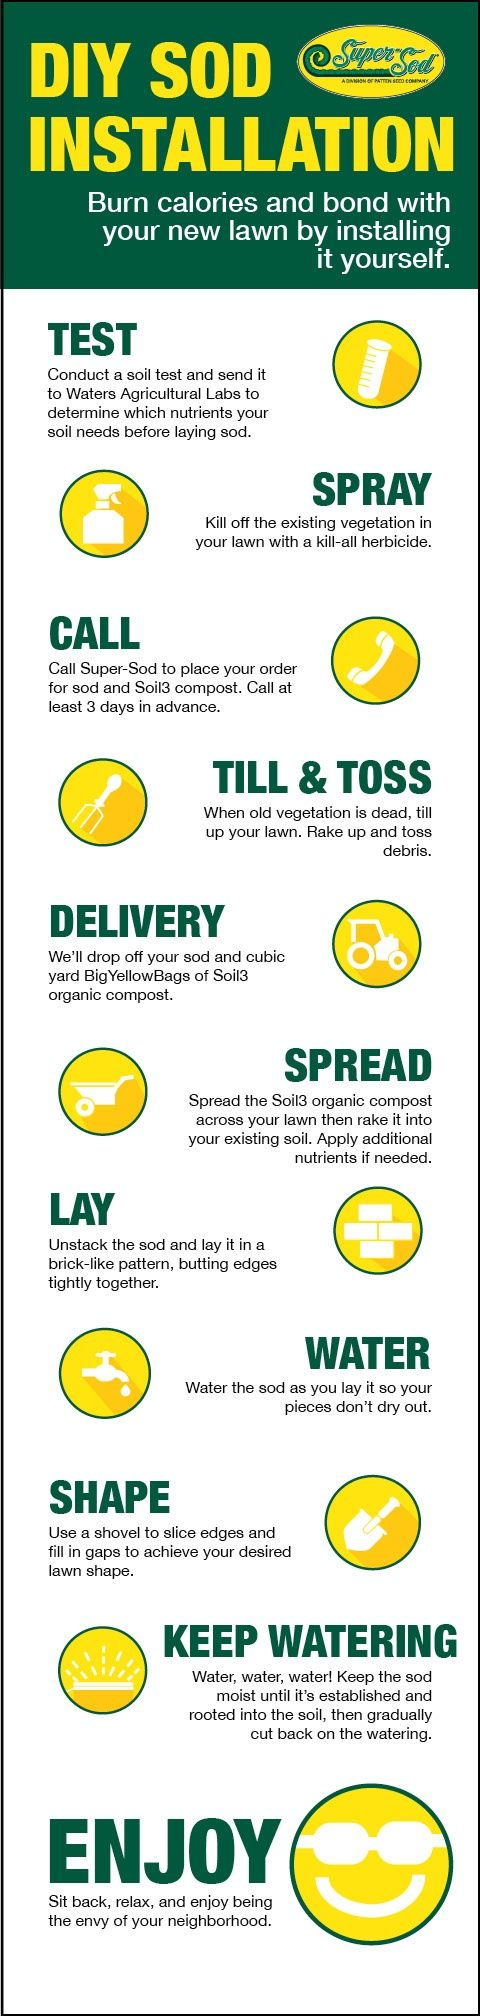 Diy Sod 125 Best Diy Lawn Care Images On Pinterest Lawn Care Lawns And